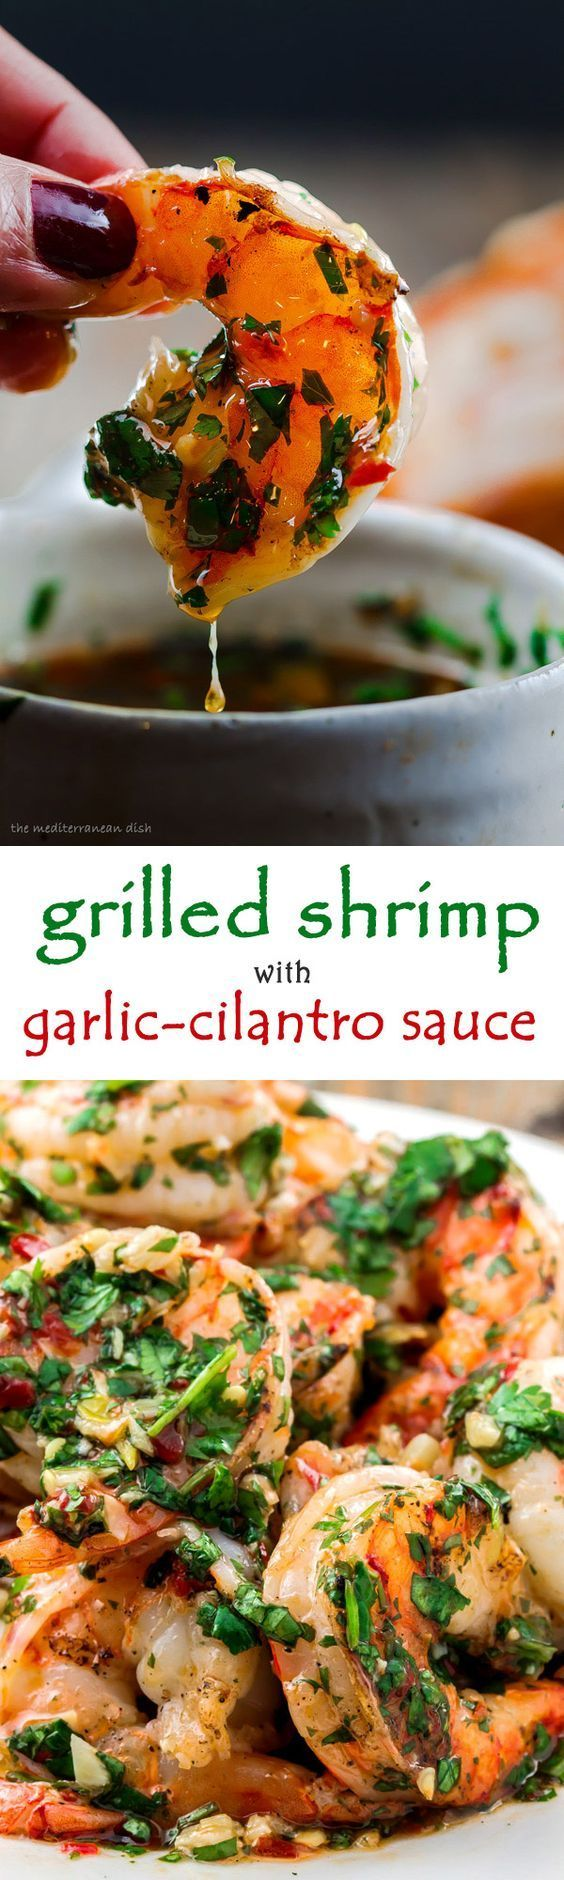 Grilled Shrimp with Roasted Garlic-Cilantro Sauce   The Mediterranean Dish. You'll want to make more of this delicious sauce to toss with quinoa or pasta!  See it on the The Mediterranean Dish blog.